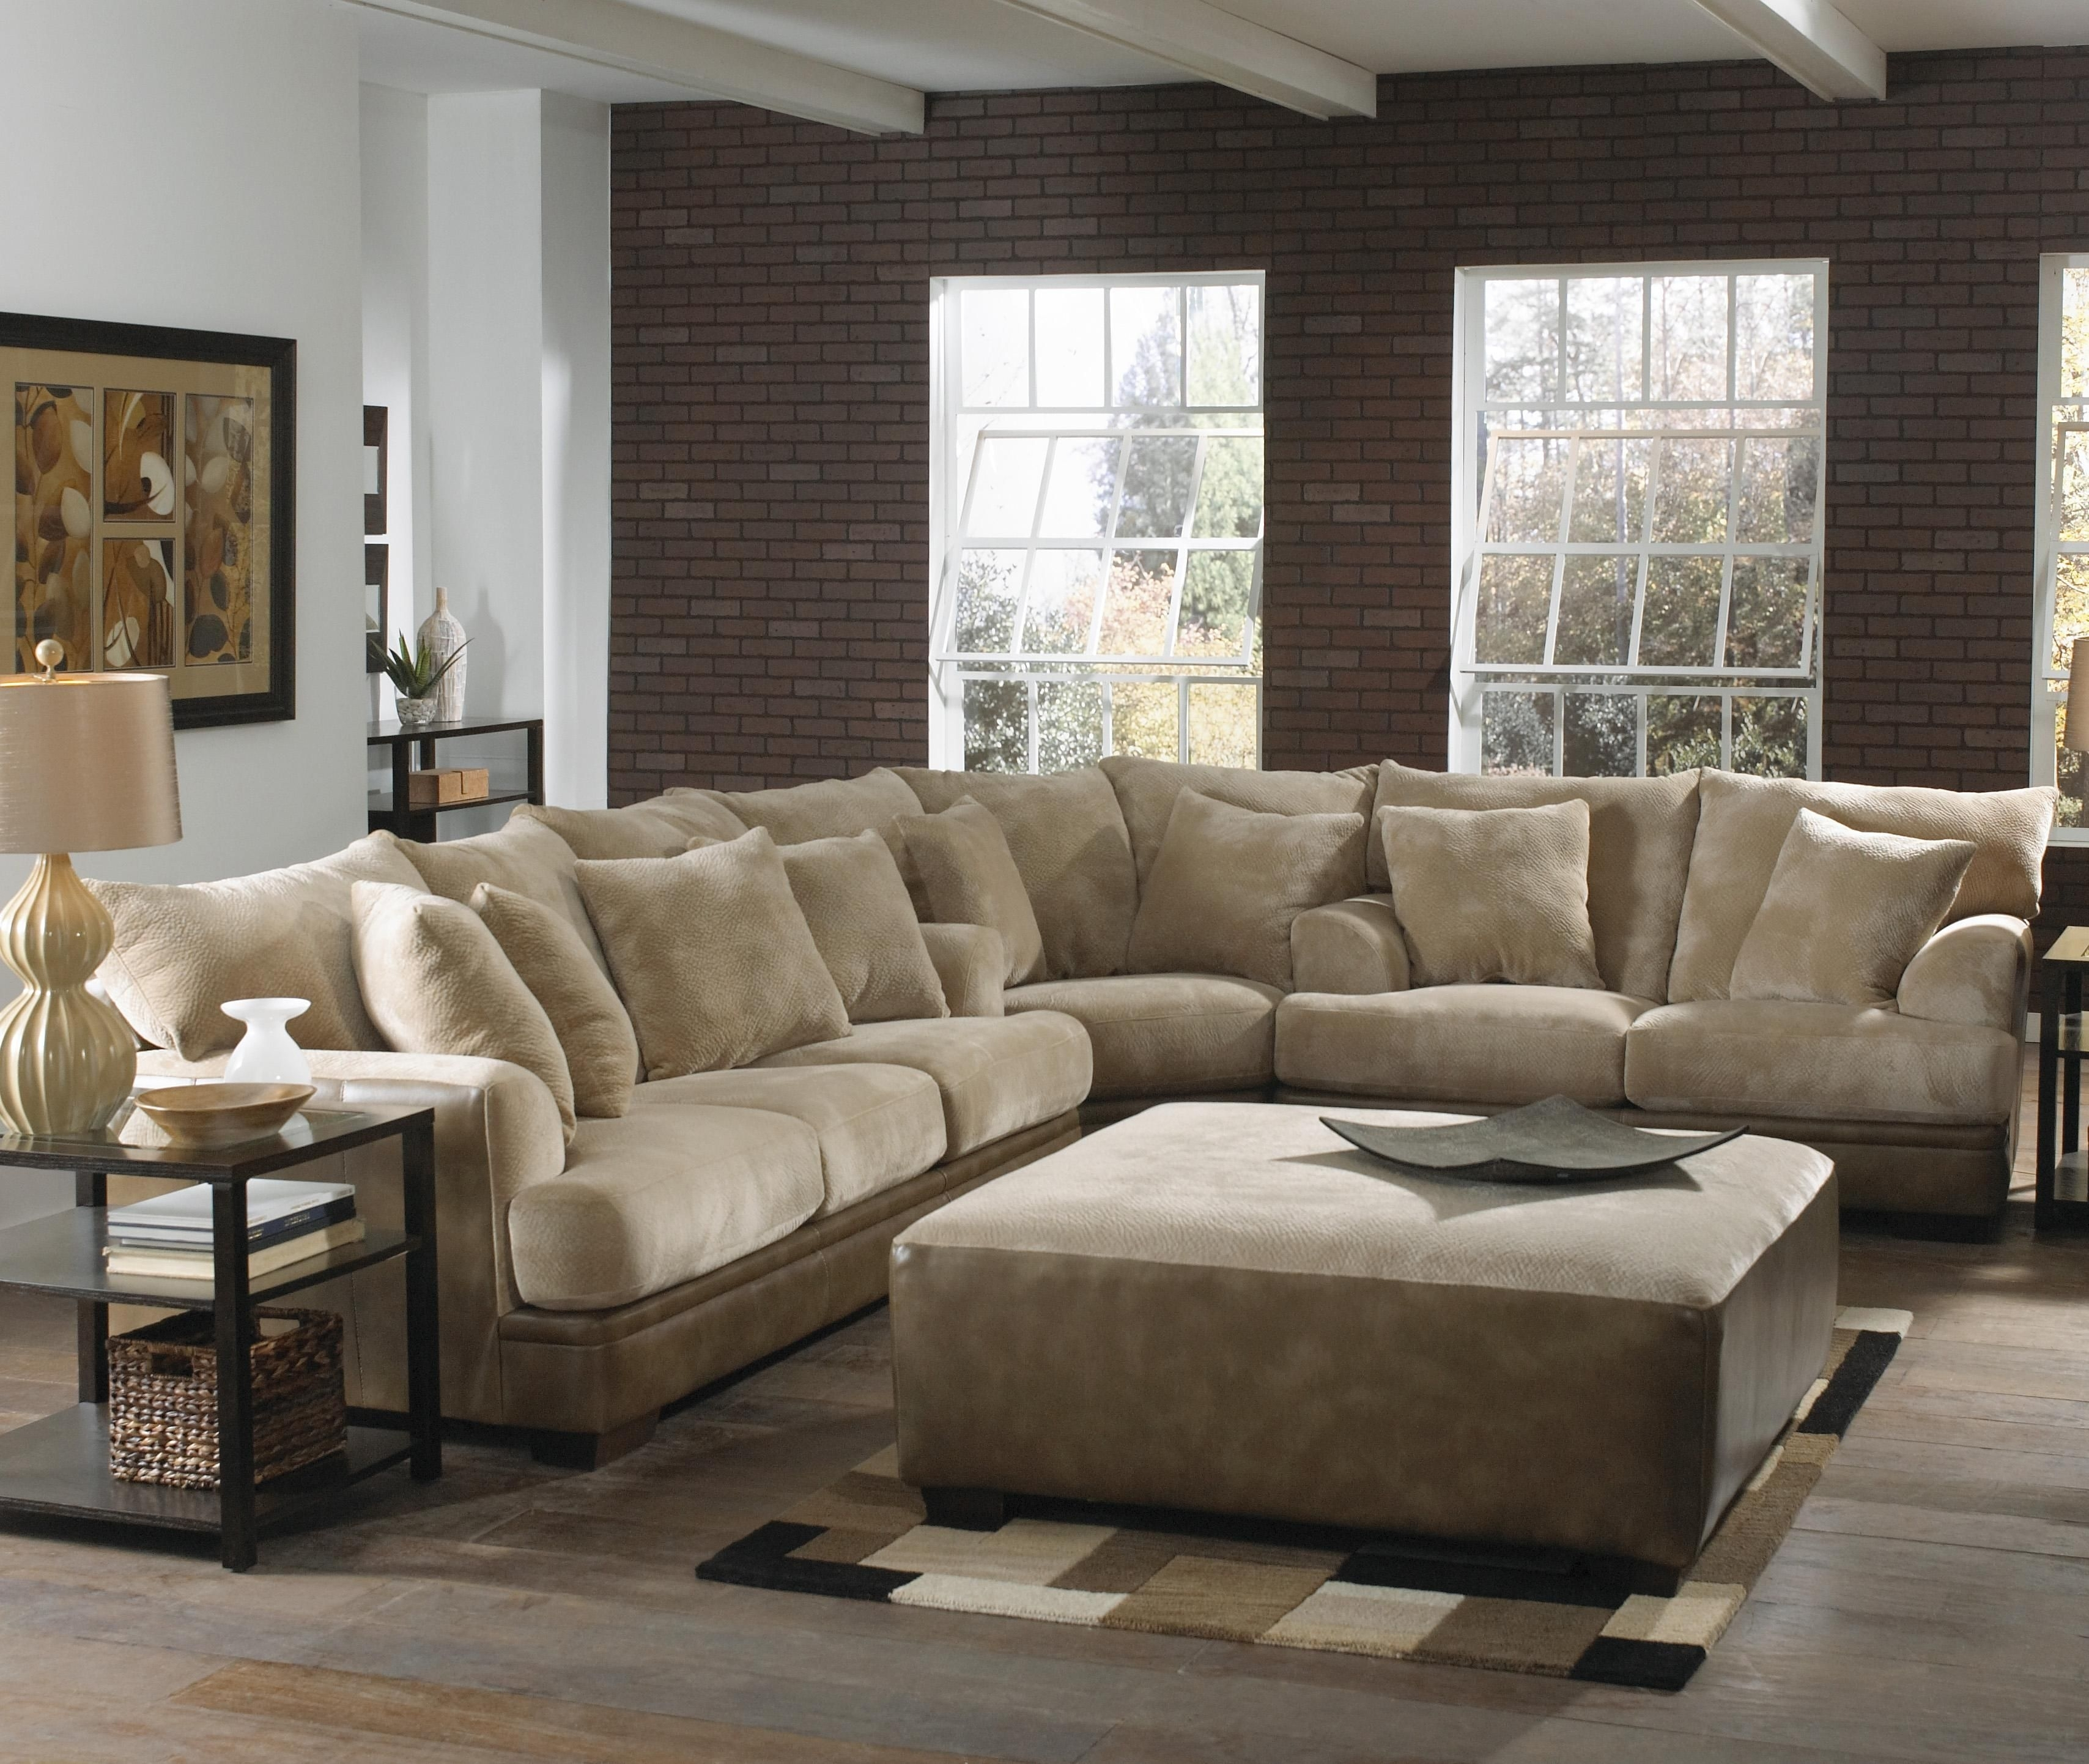 Pinsofascouch On Living Room Sofa | Pinterest | Sofa, Furniture In Norfolk Chocolate 3 Piece Sectionals With Raf Chaise (Photo 18 of 30)